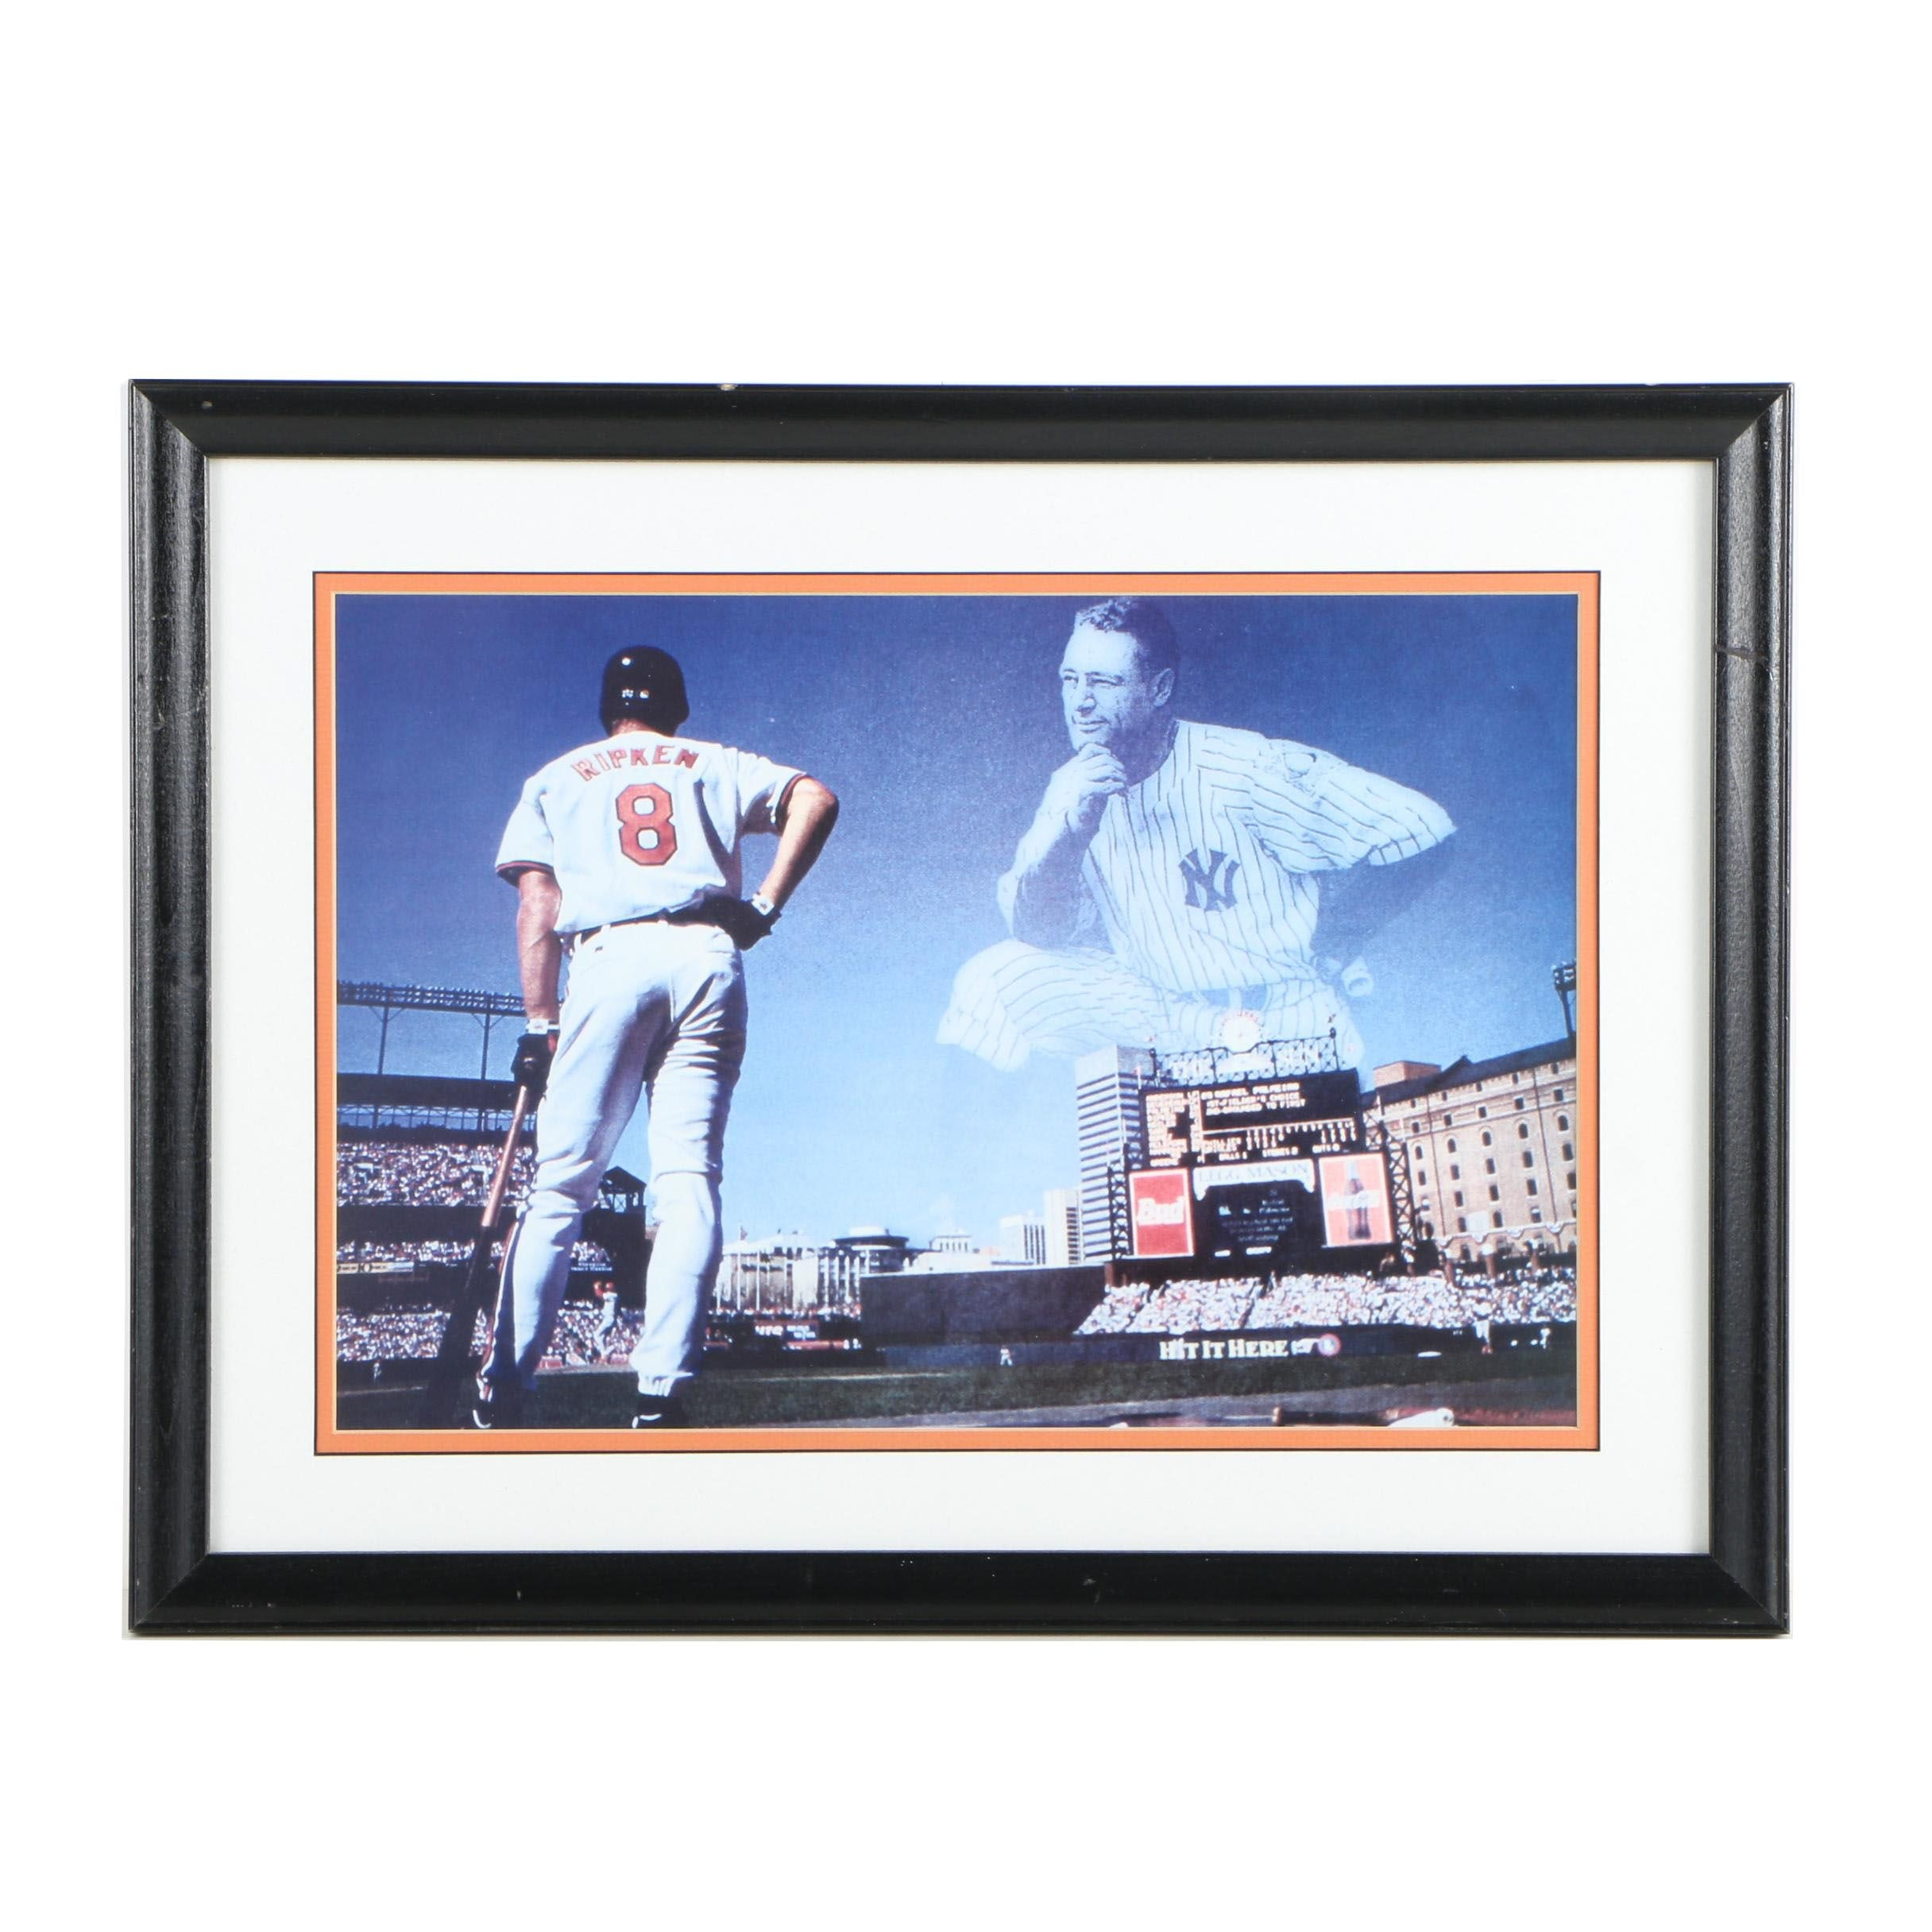 Offset Lithograph of Cal Ripken Jr. and Lou Gehrig